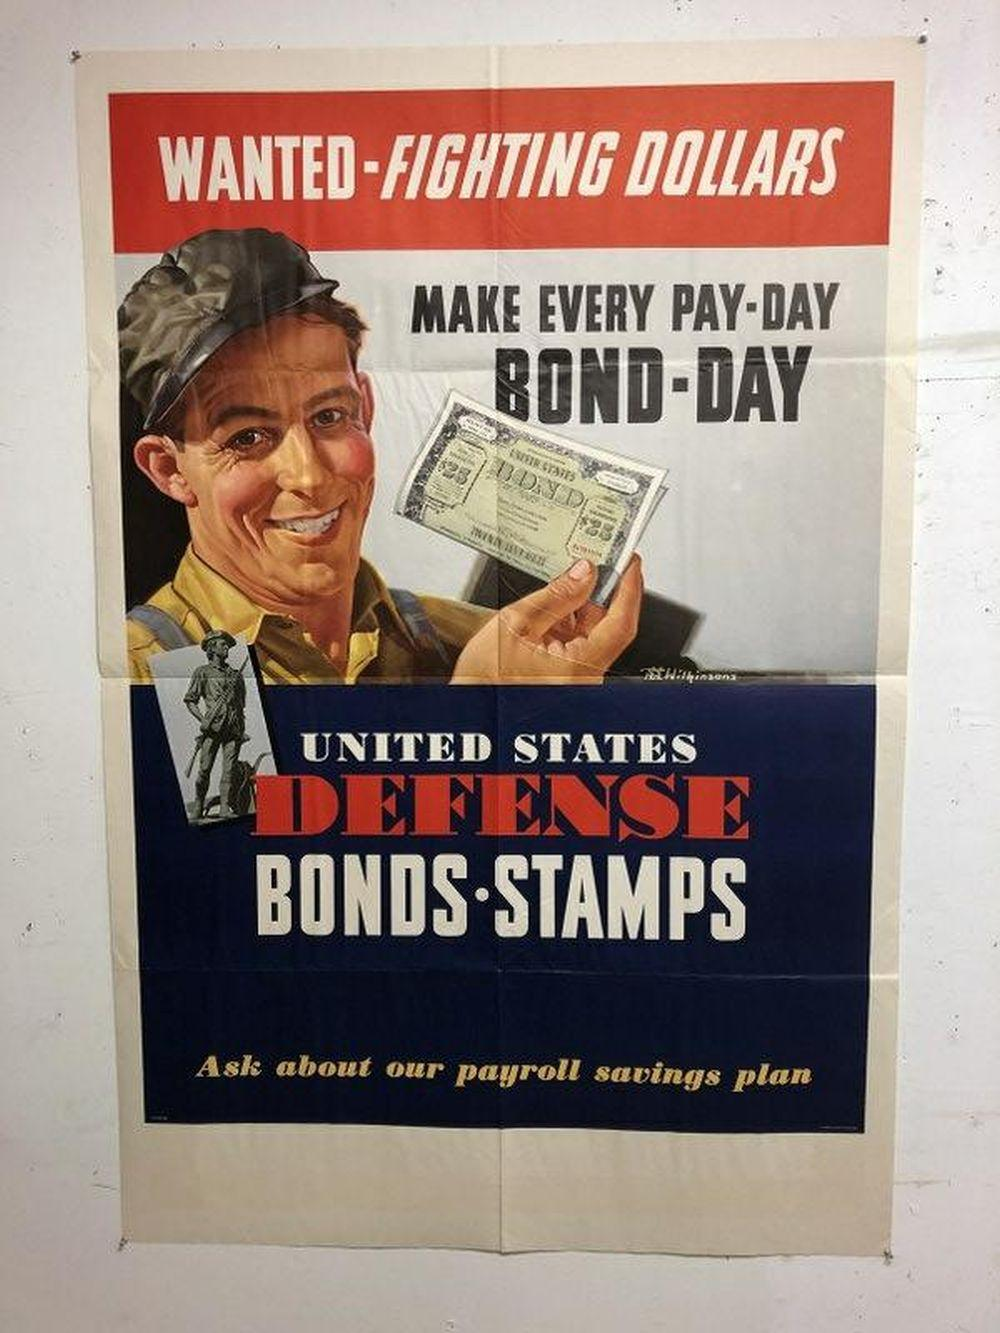 WWII POSTER-WANTED-FIGHTING DOLLARS, UNITED STATES